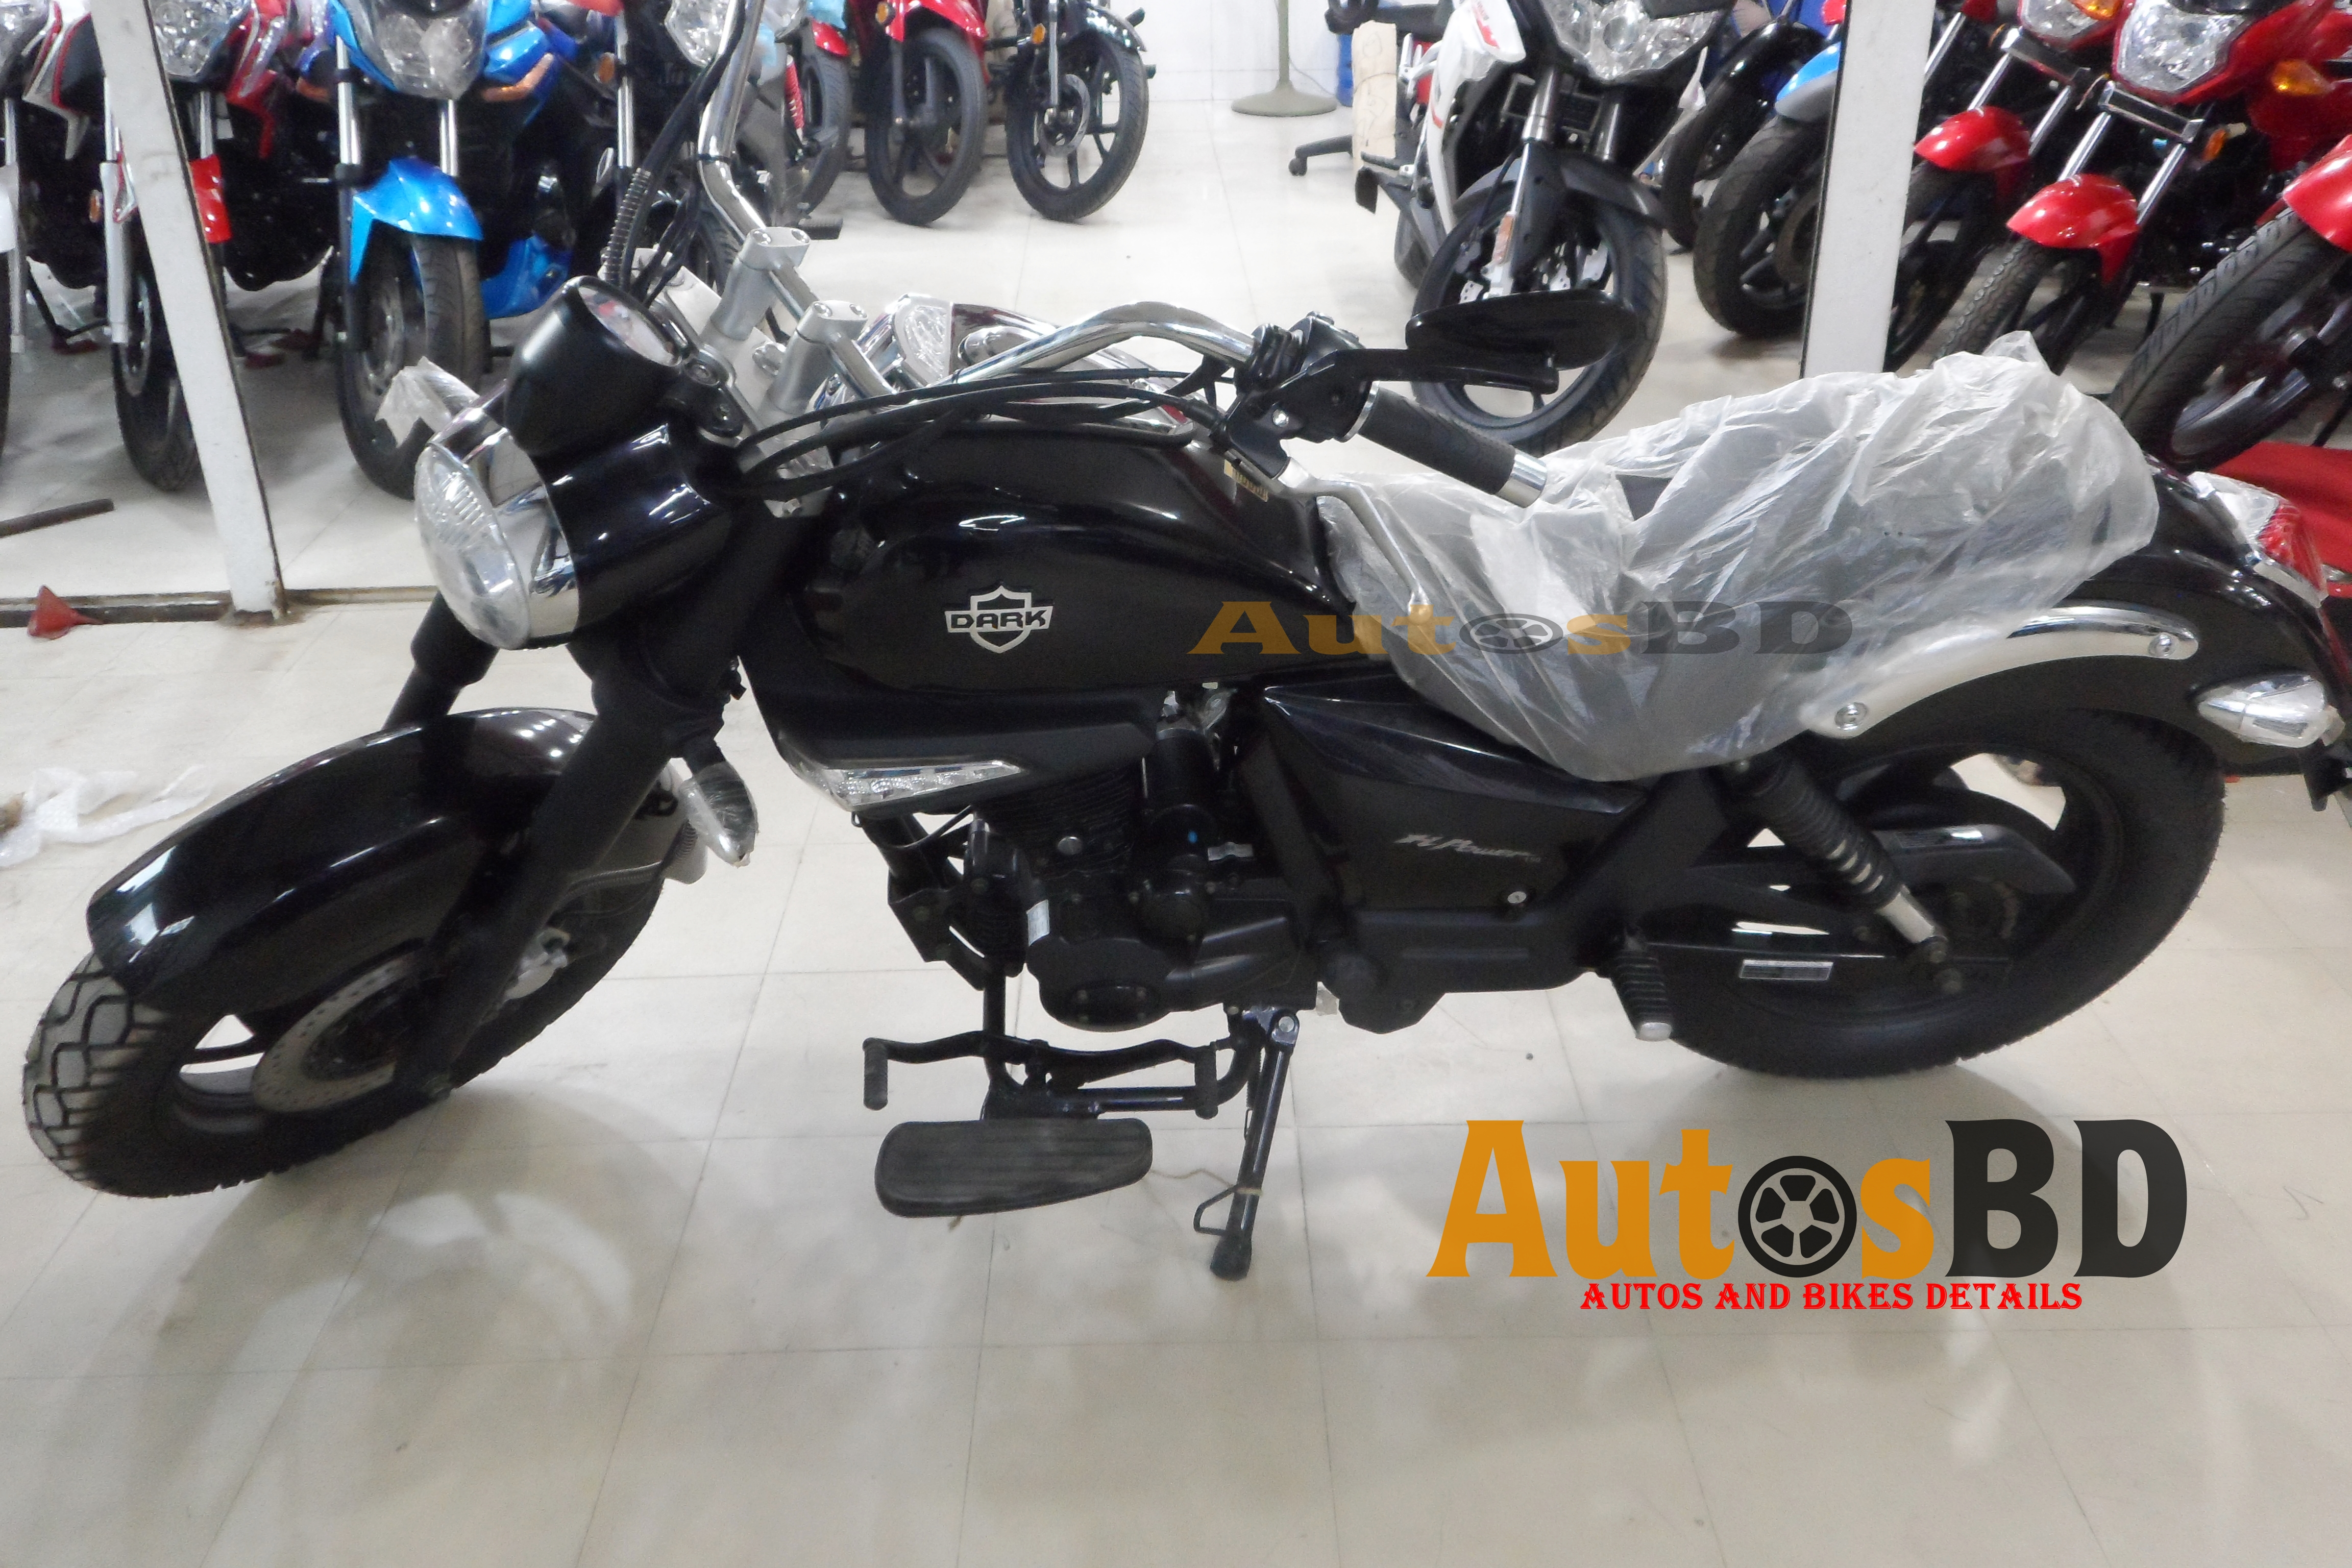 H Power Dark Motorcycle Specification